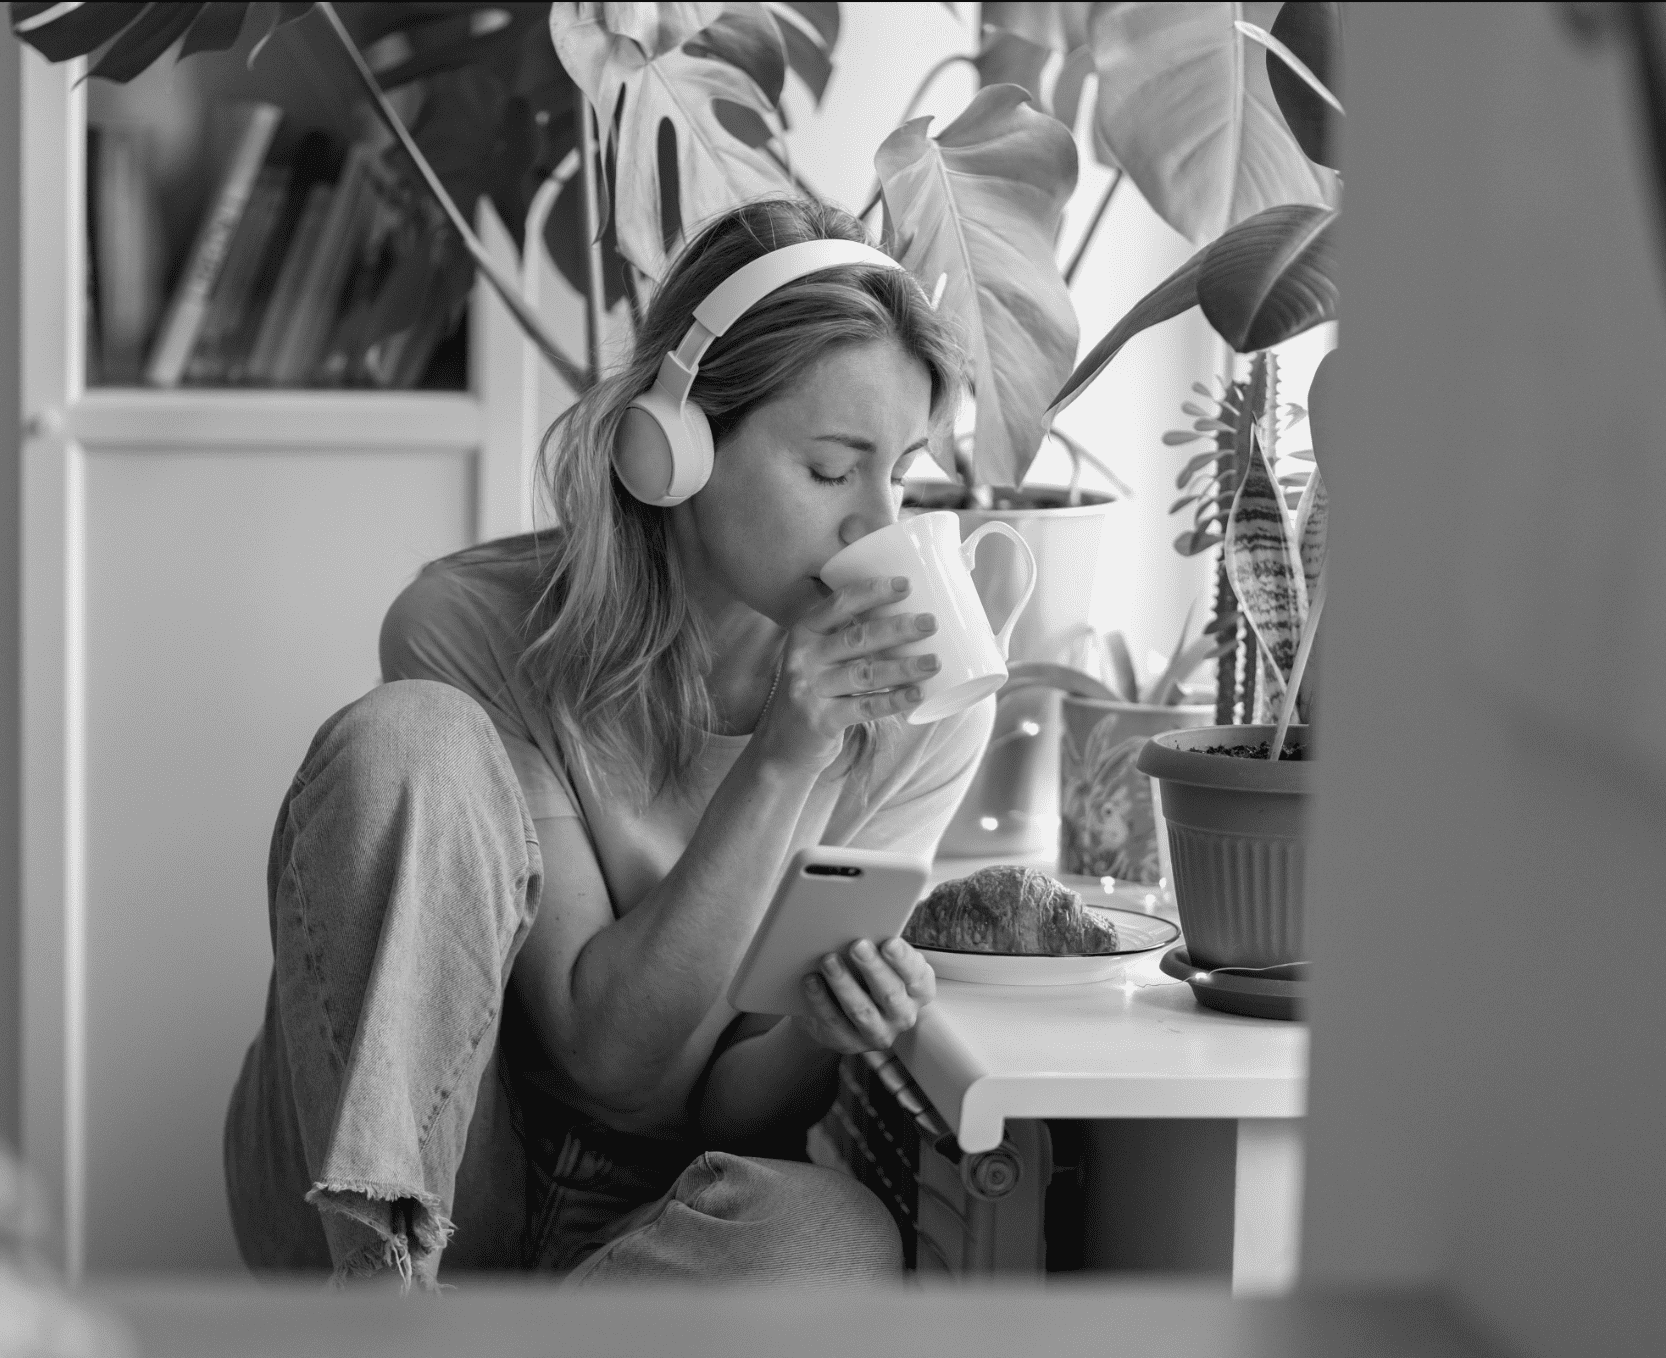 A woman wearing headphones sips from a mug.